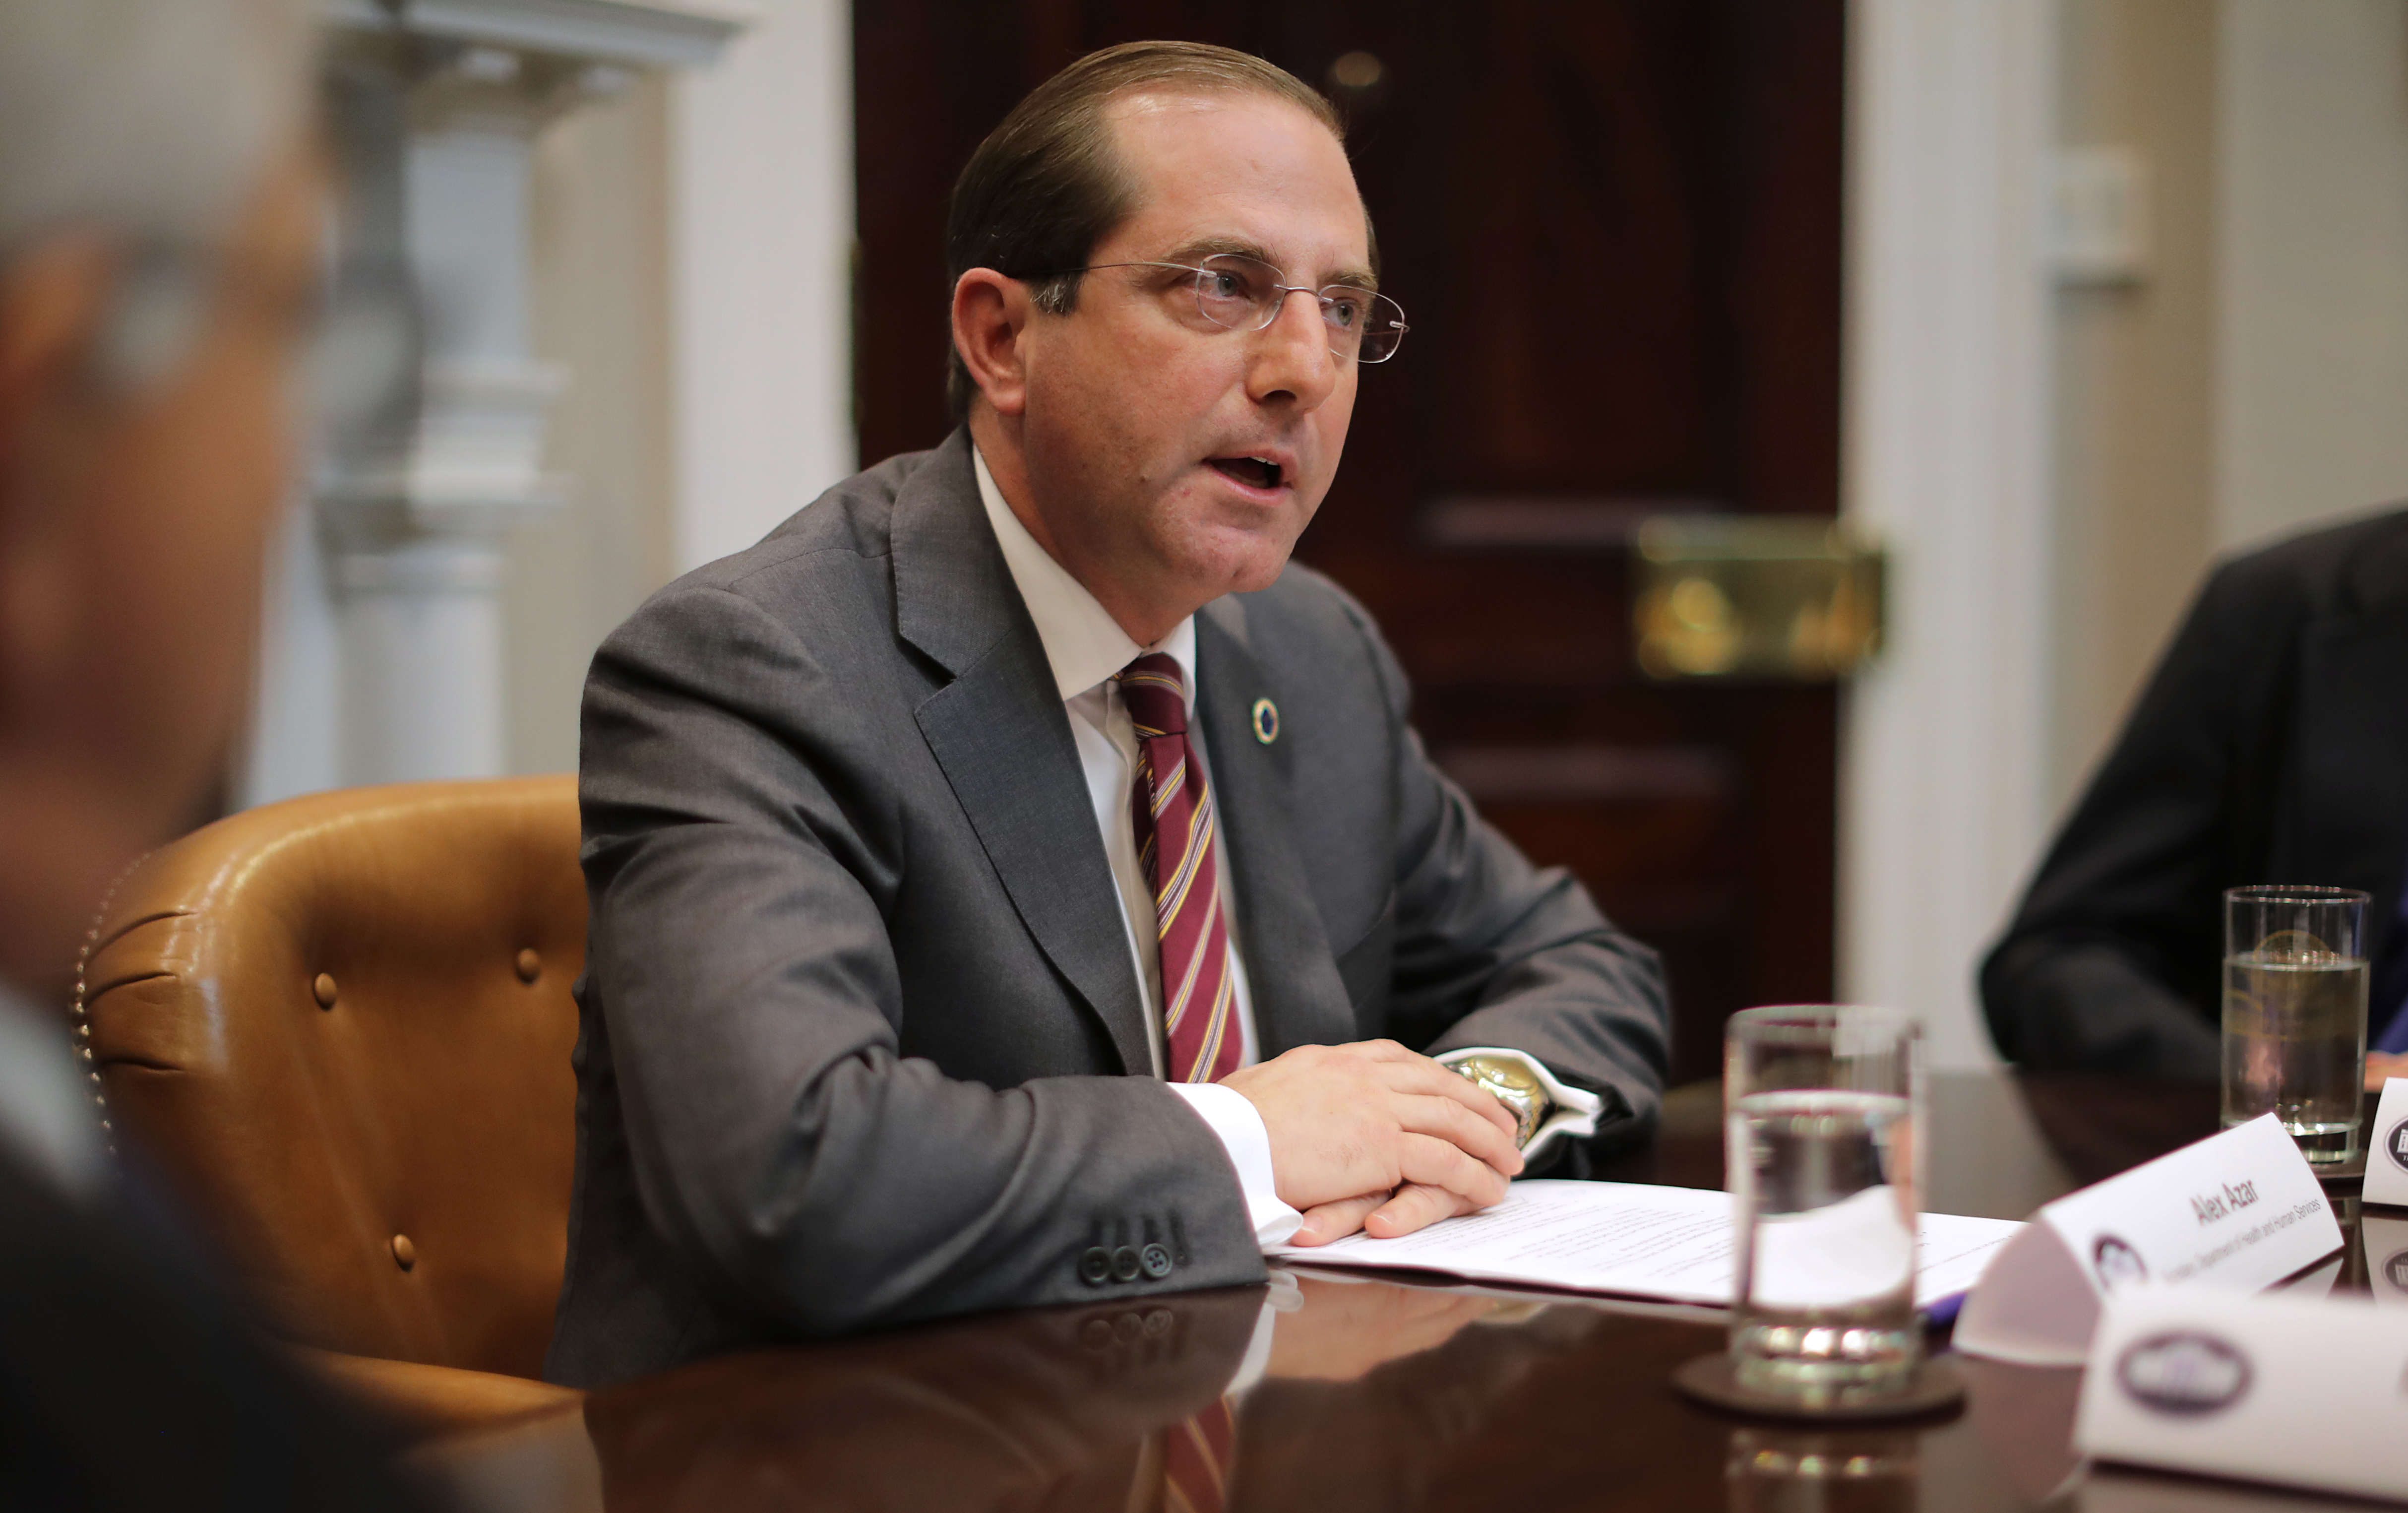 Health and Human Services Secretary Alex Azar delivers remarks to reporters while participating in a roundtable about health care prices at the White House on Jan. 23.